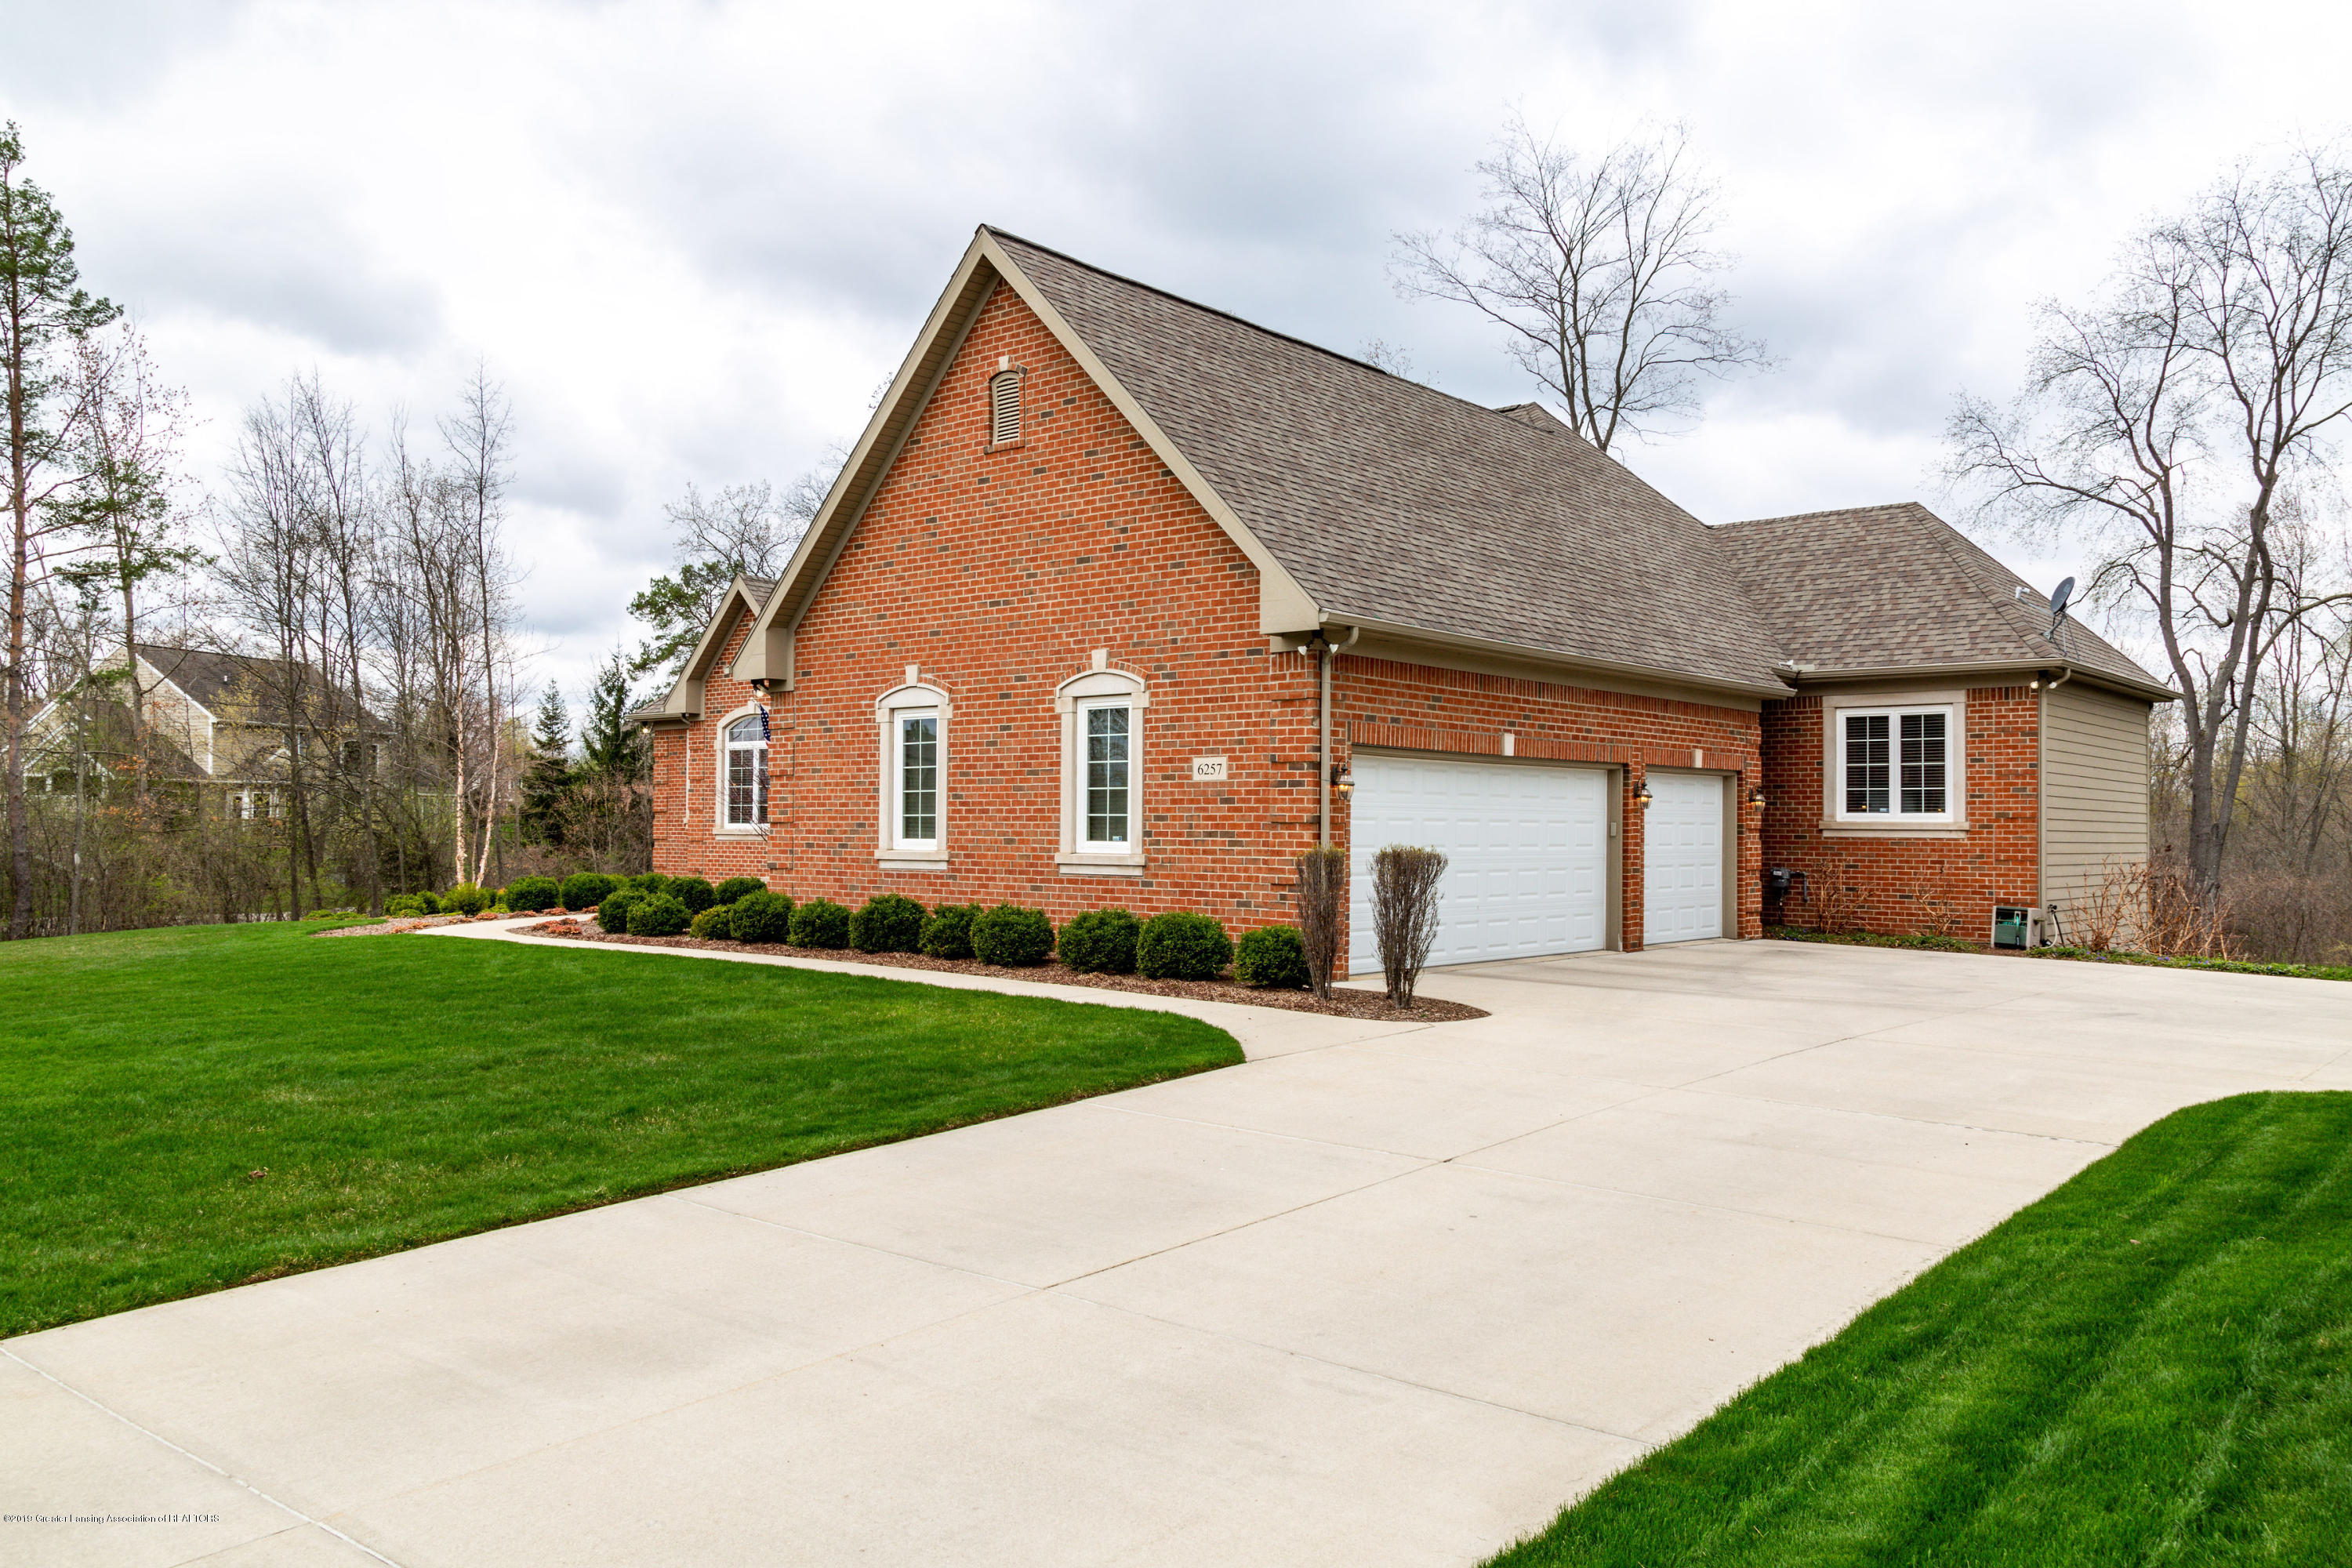 6257 Mereford Ct - 20190426-942A2845 - 46